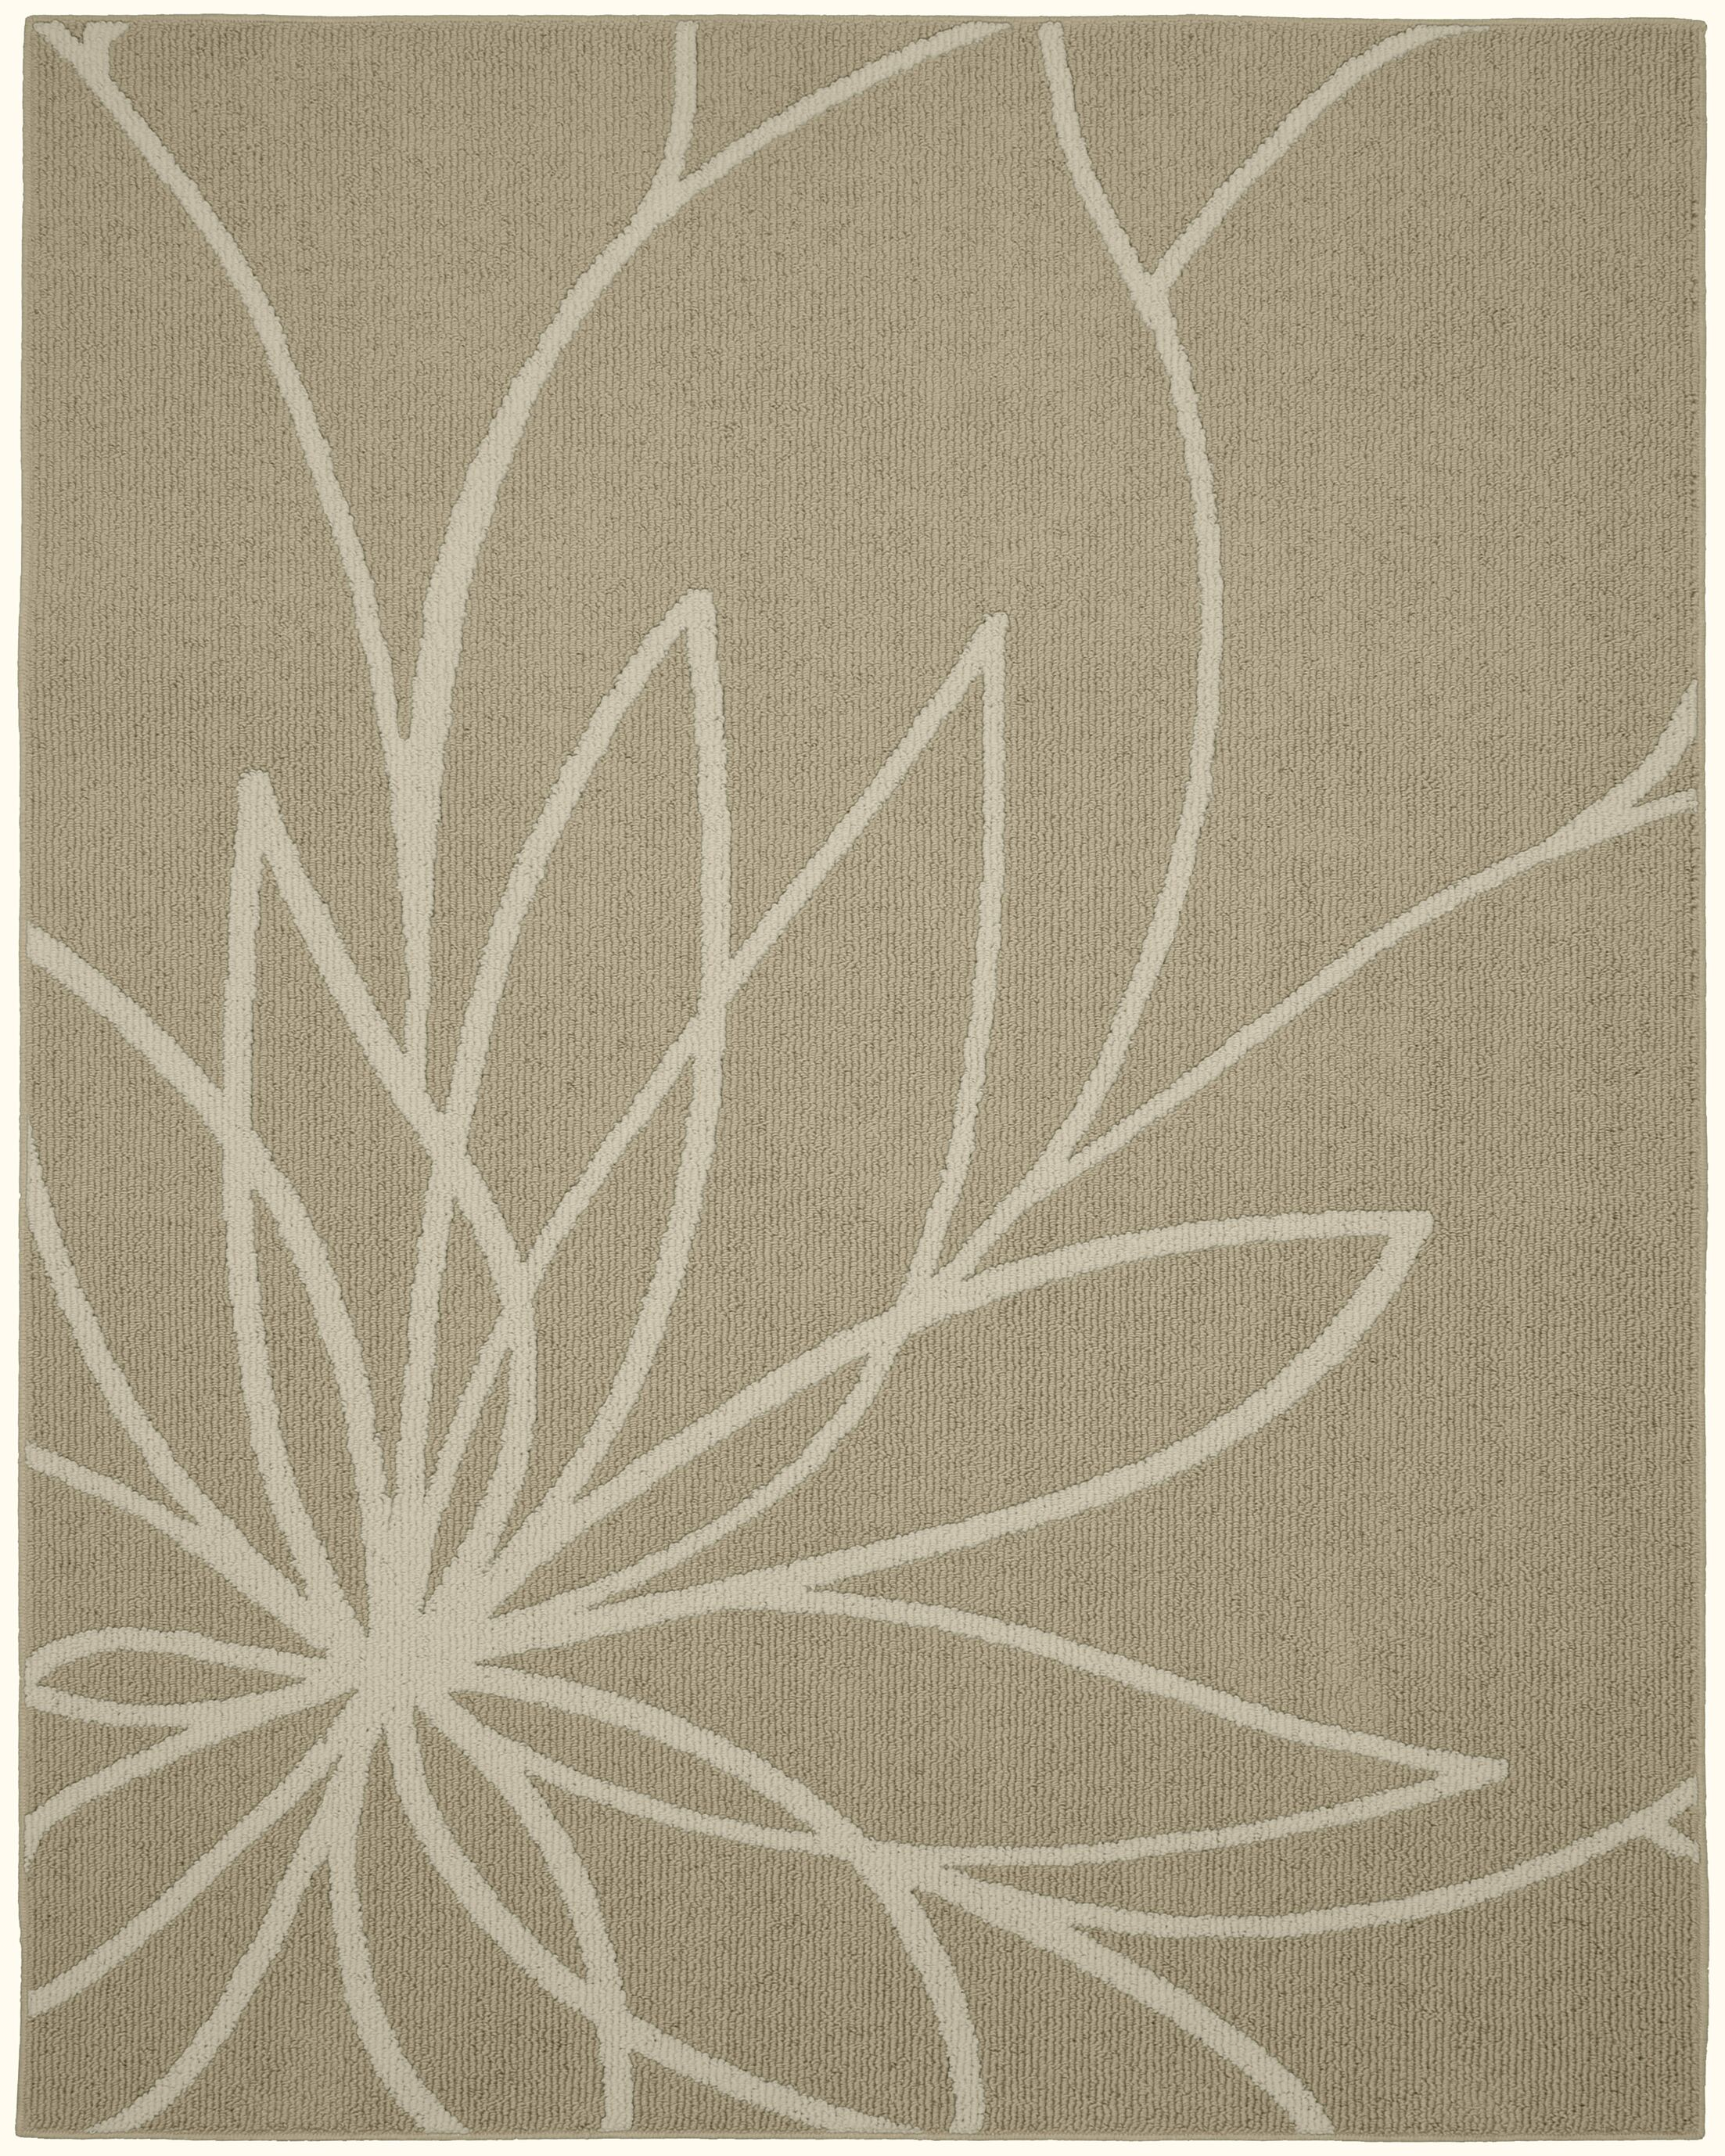 Grand Floral Tan/Ivory Area Rug Rug Size: Rectangle8' x 10'